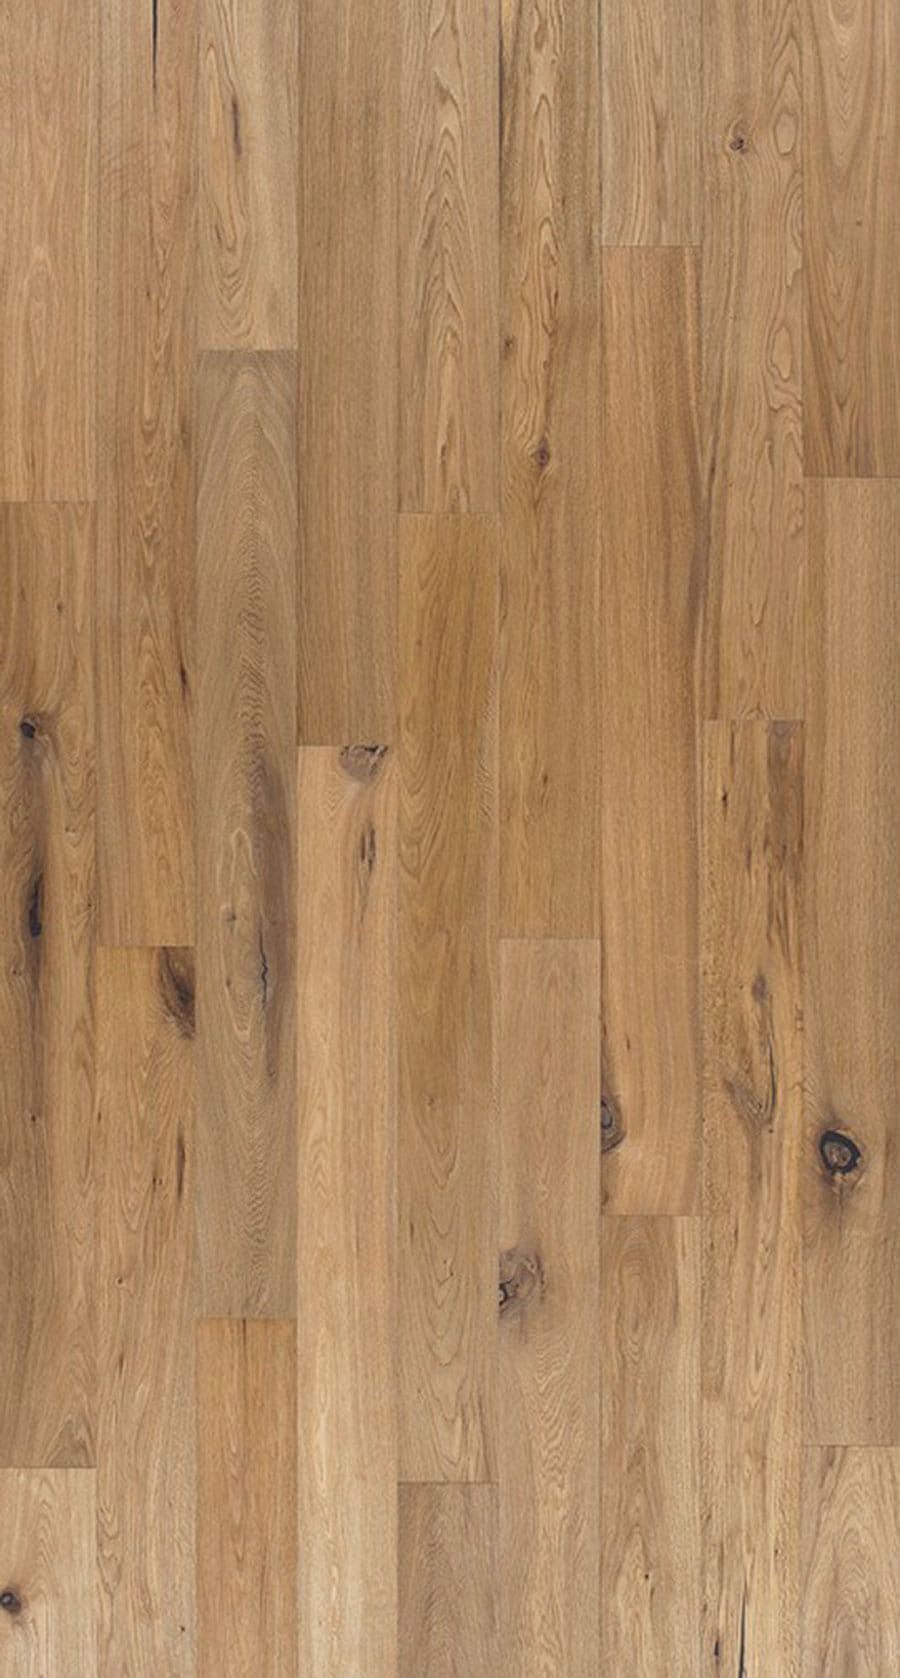 Kahrs Spirit Hardwood Flooring Rugged Crater Oak